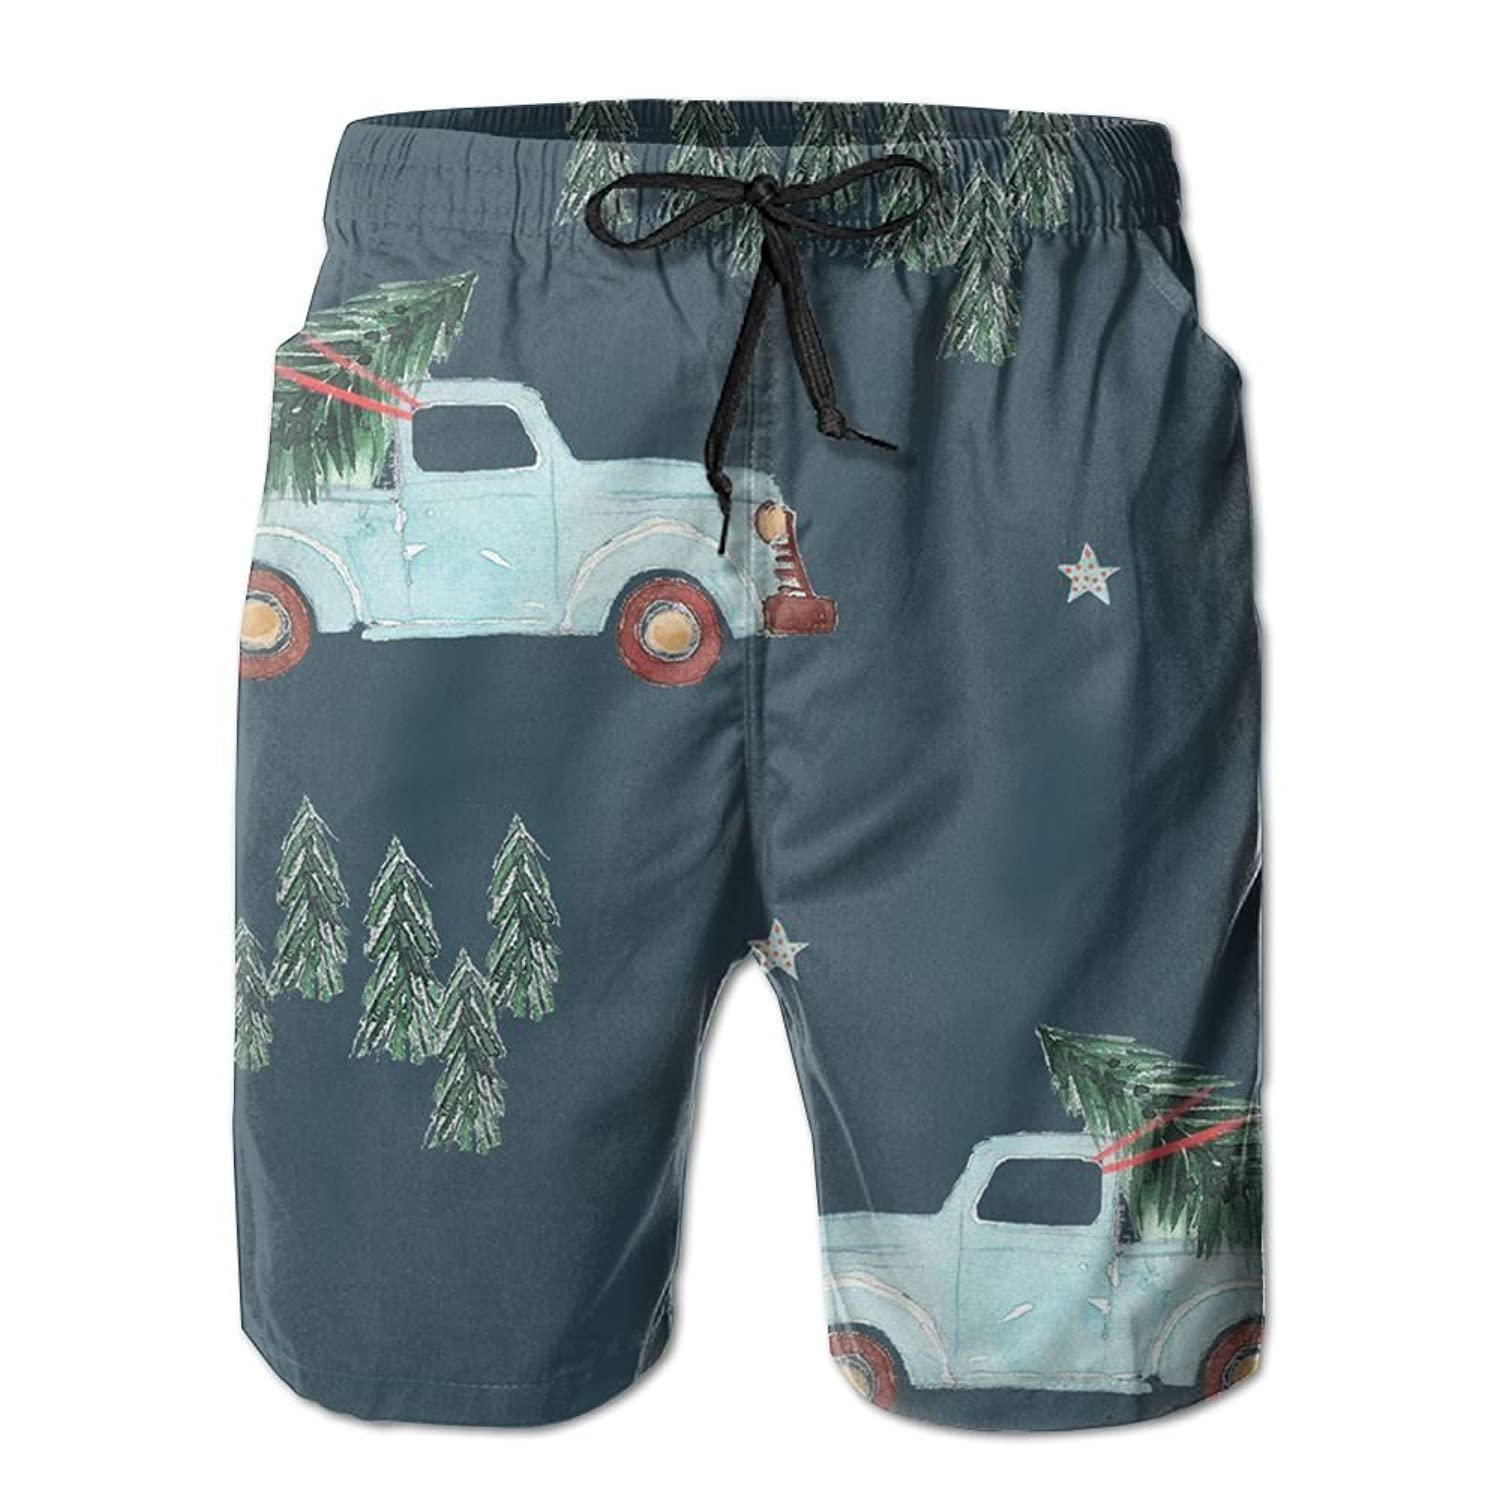 Cheap Family Fun Holidays Christmas Tree Men's Board Shorts Swim Trunks Beachwear Summer Surf Printed Casual Water Shorts hot sale